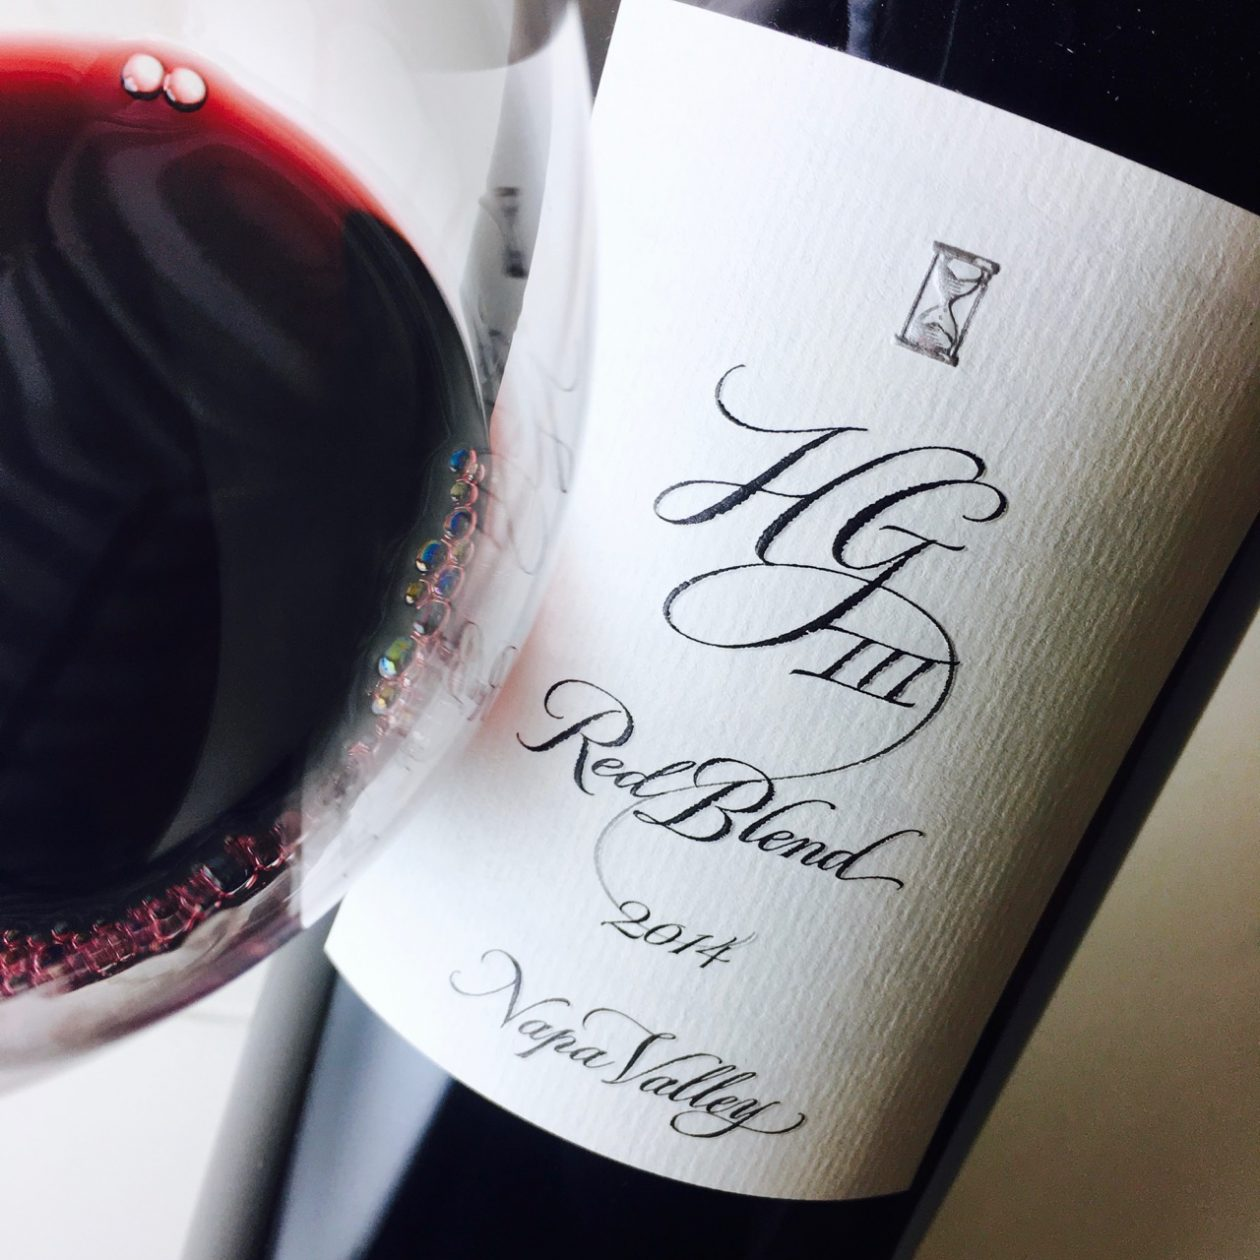 2014 Hourglass Red Blend HG III Napa Valley